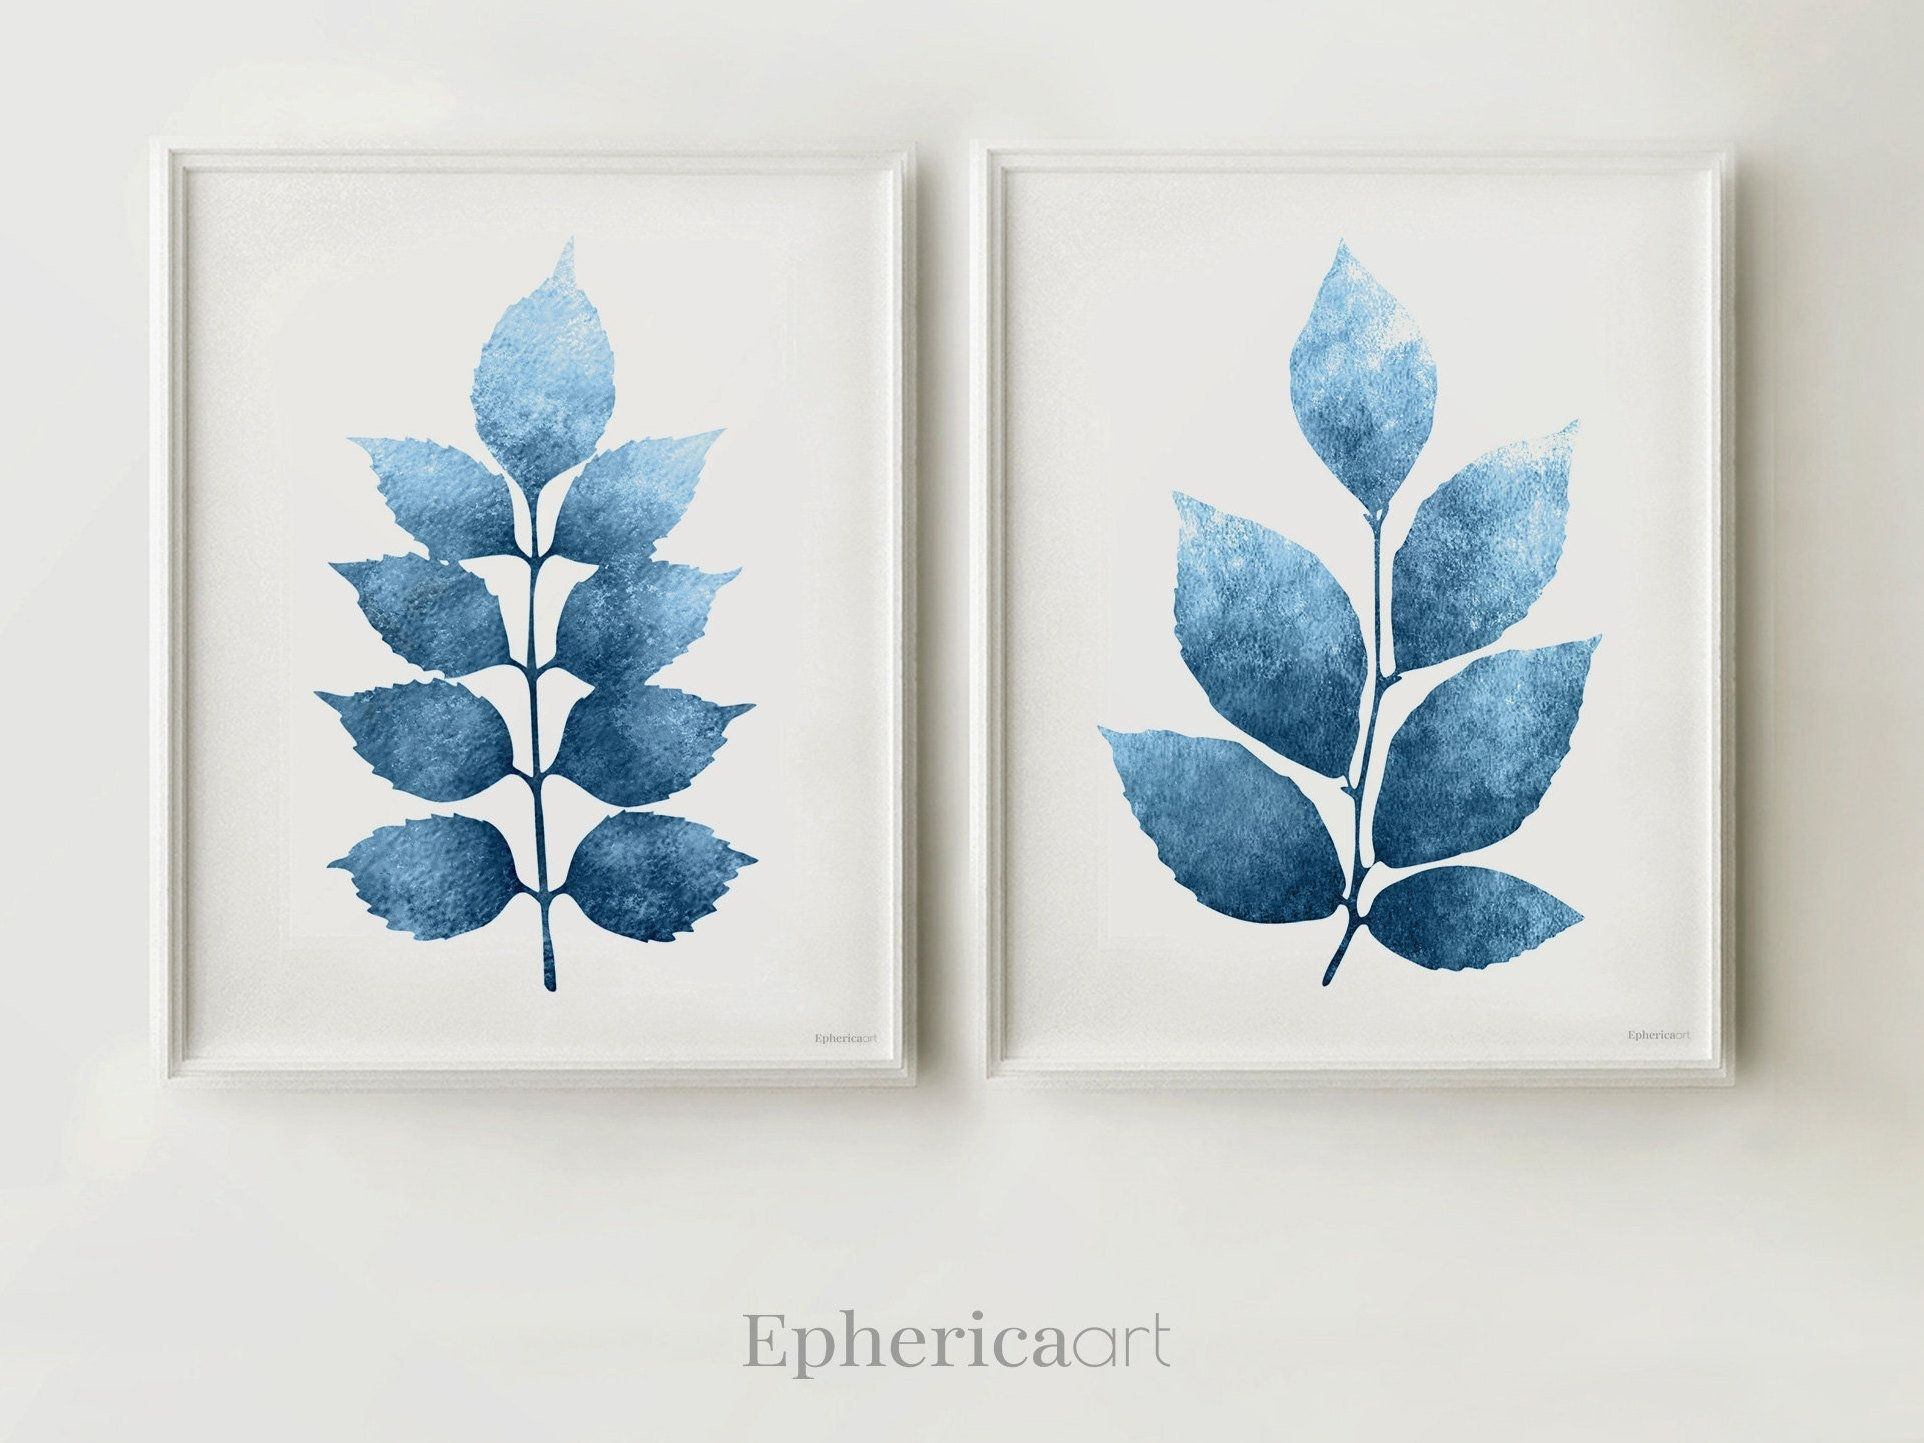 Navy Blue Wall Art, Digital Botanical Set Of 2 Artworks, Home Wall with regard to Navy Blue Wall Art (Image 13 of 20)